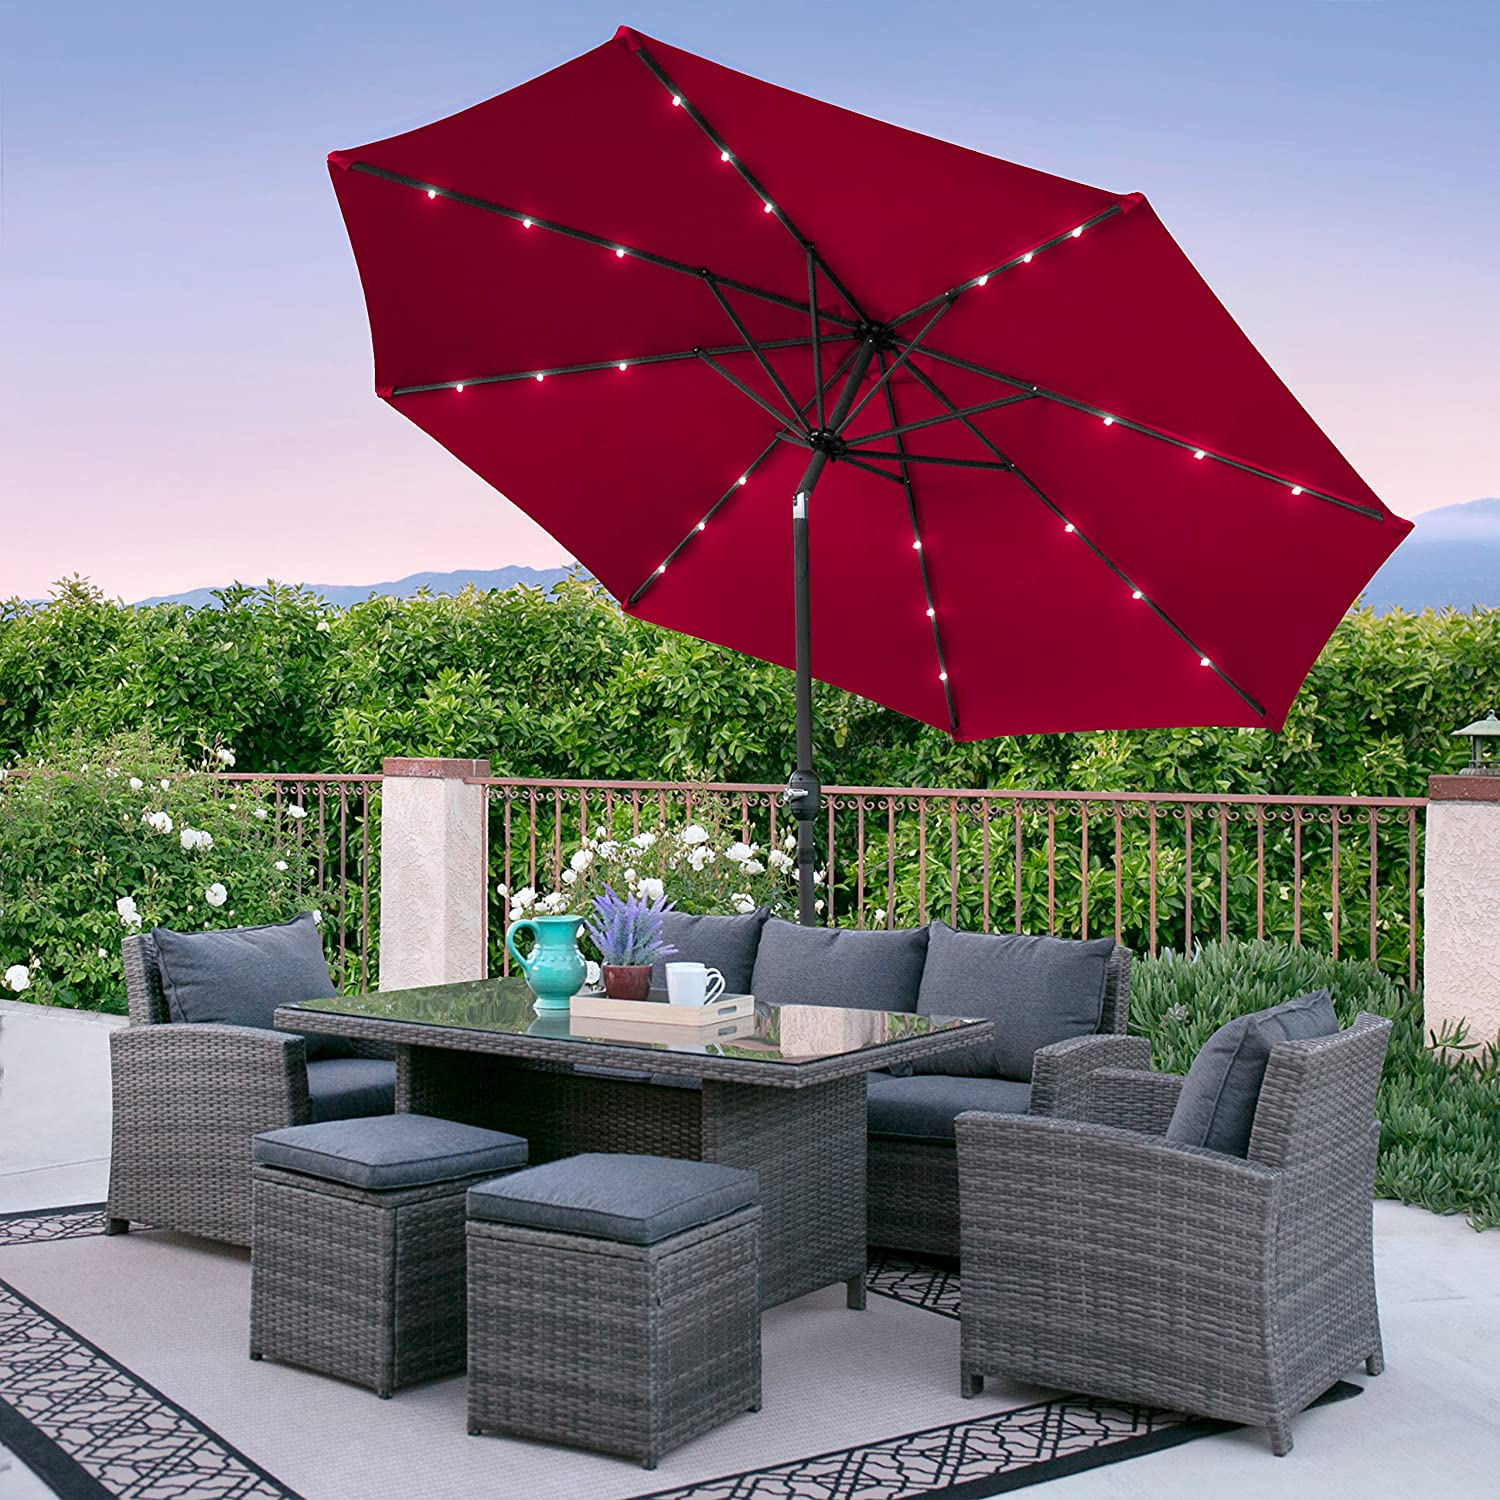 The Best Patio Umbrellas For Your Garden Or Backyard: Reviews & Buying Guide 8